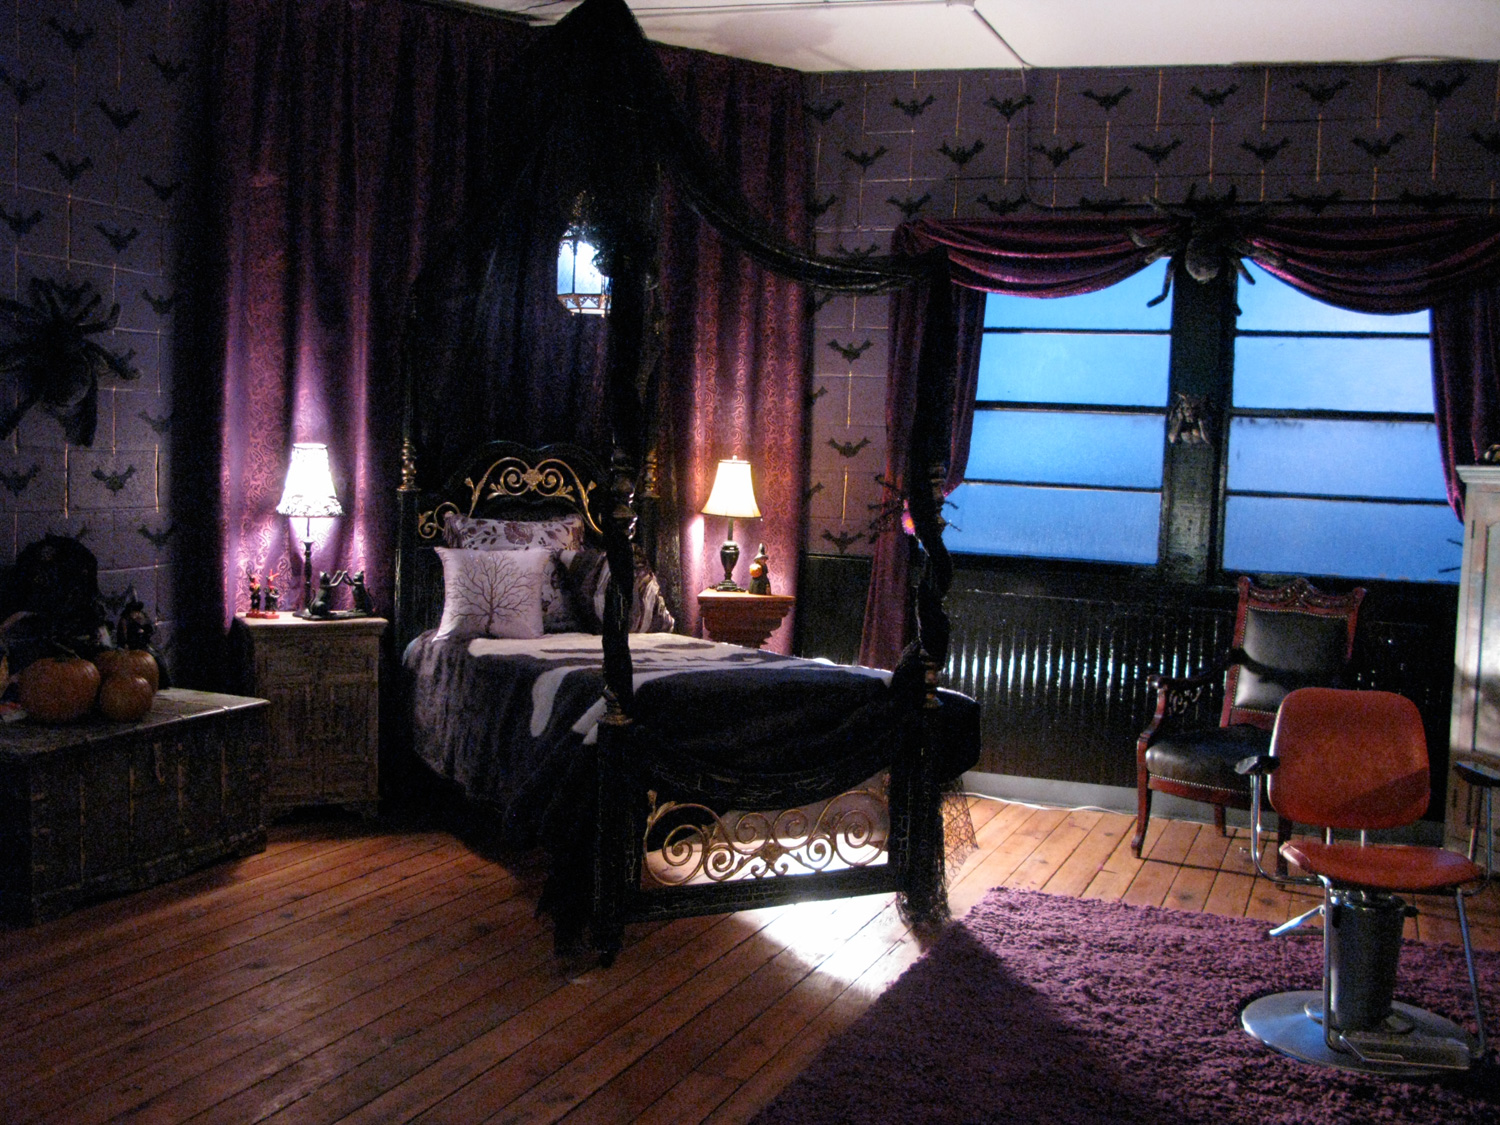 Goth Bumble Bee scout's (Kelly Gould) bedroom